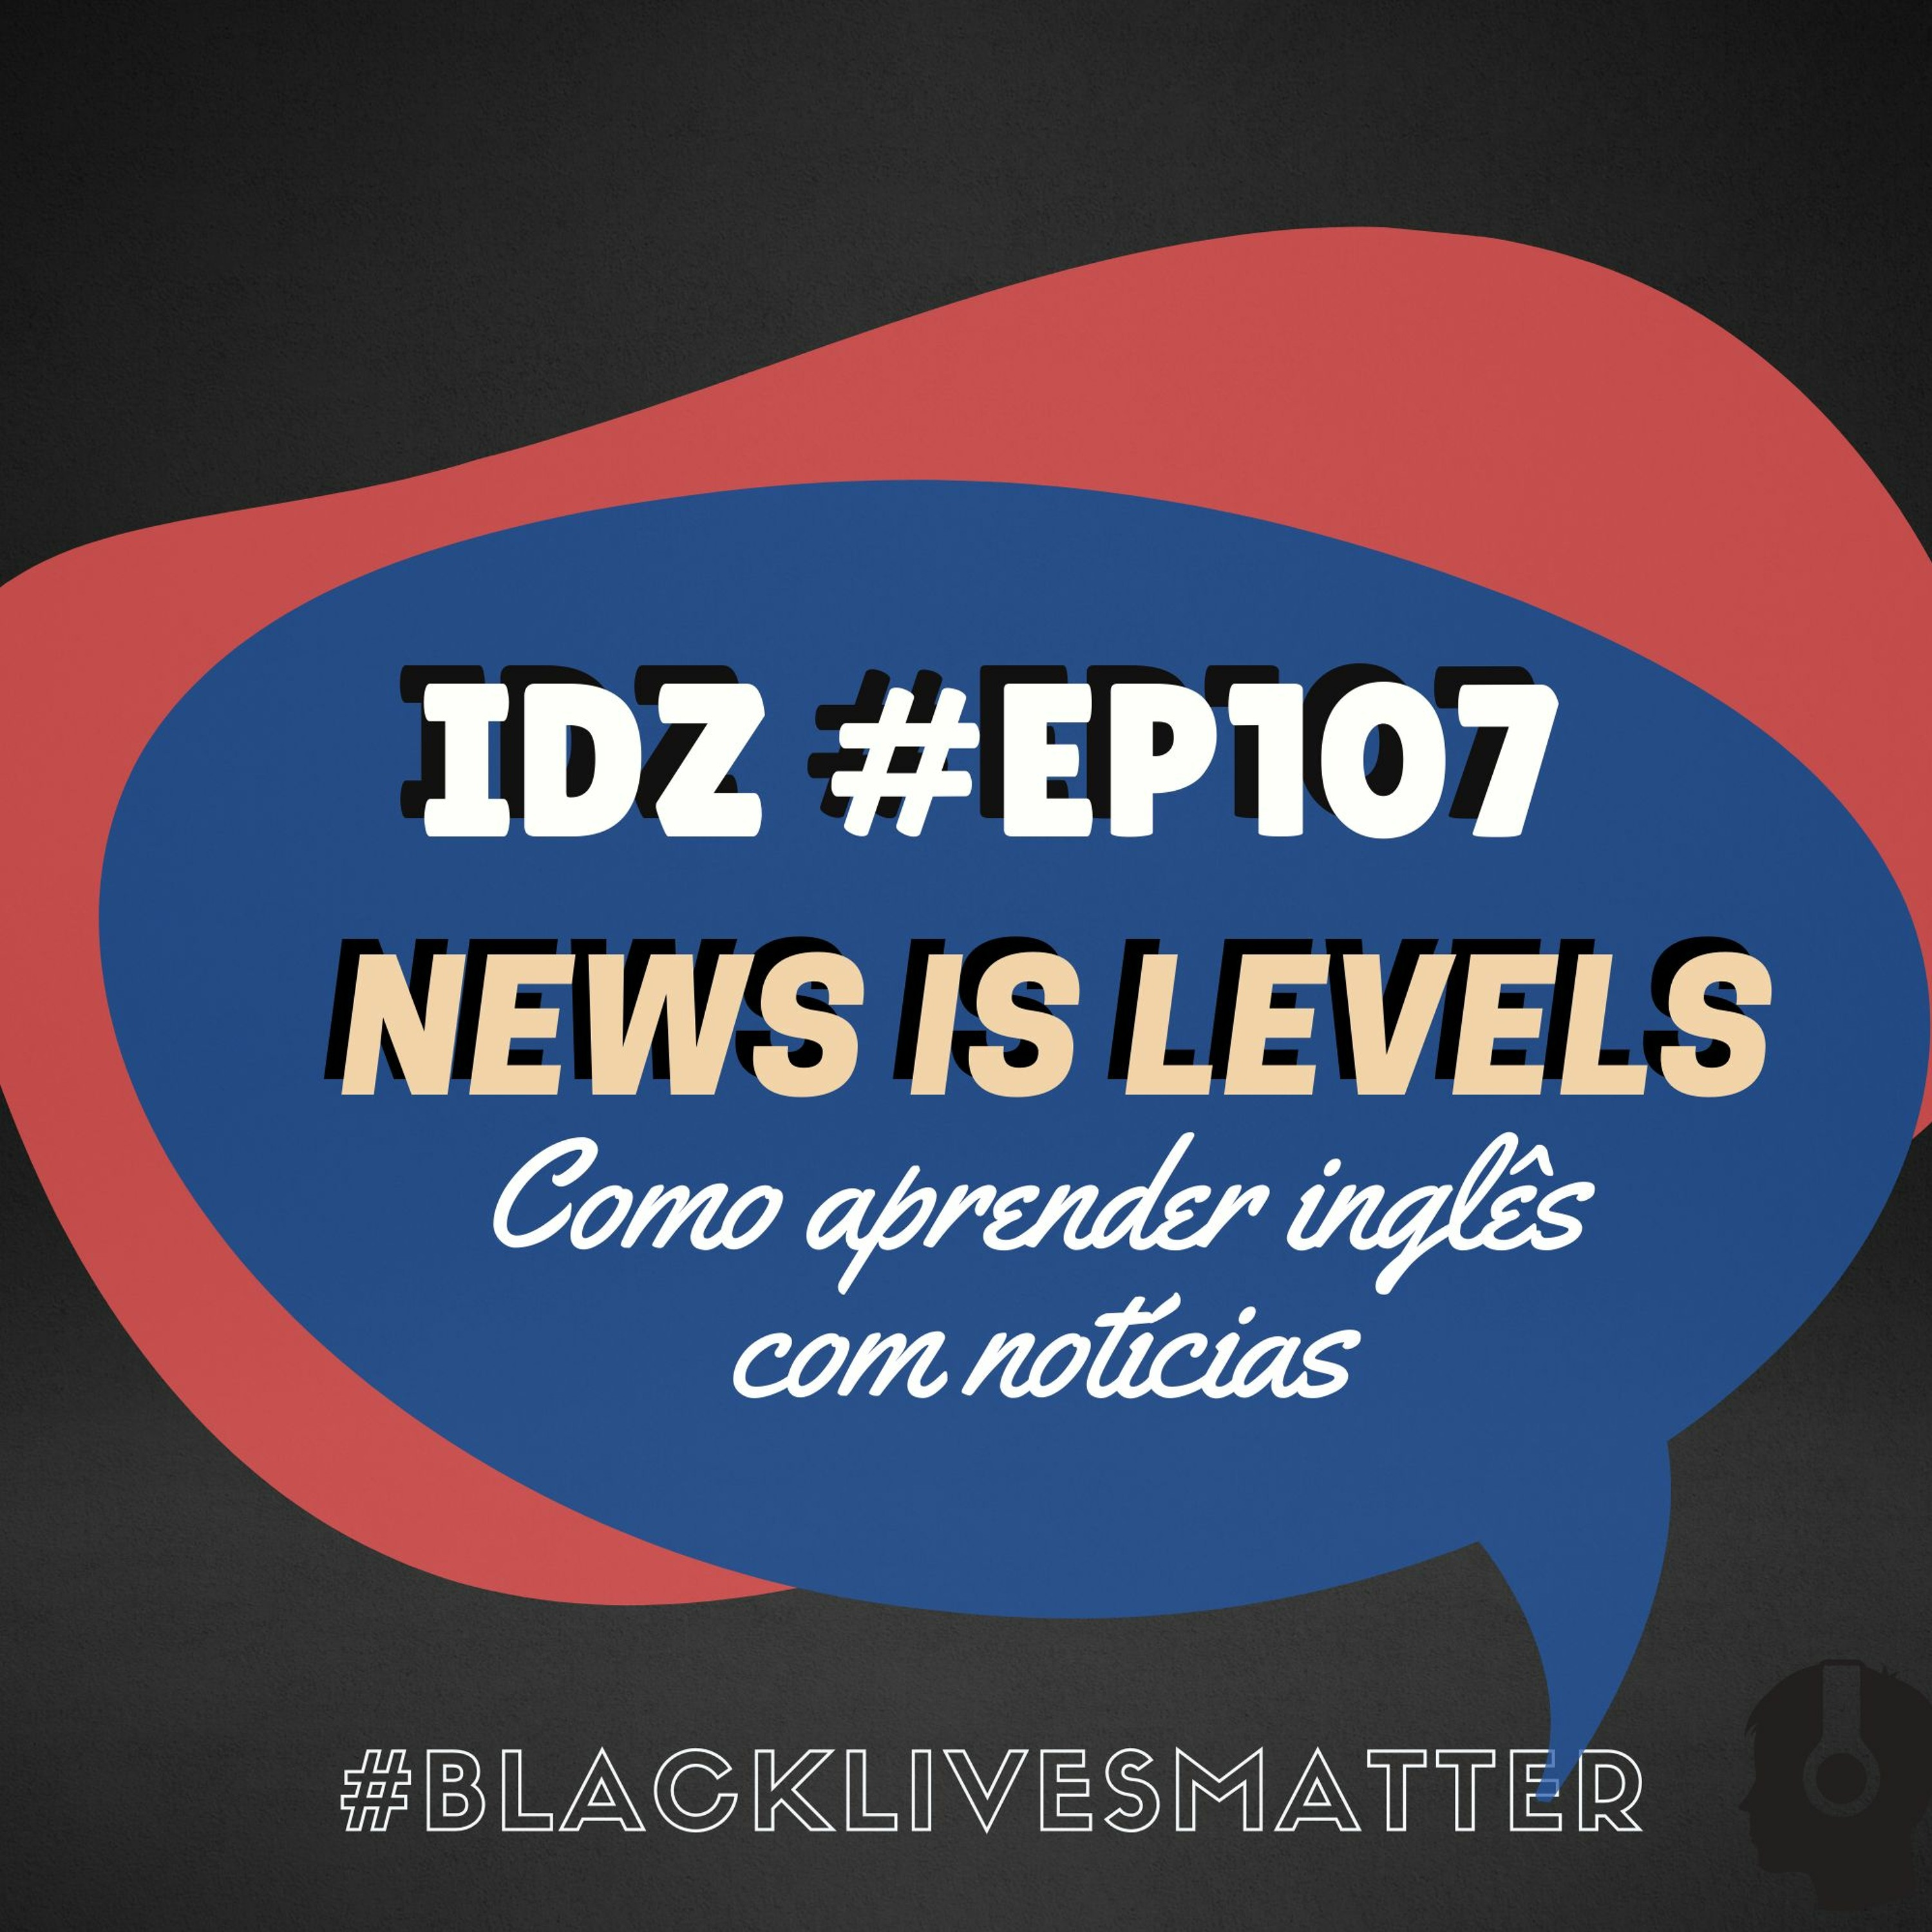 IDZ #107 - Aprendendo Inglês com Notícias [News in Levels] - Minneapolis Protests